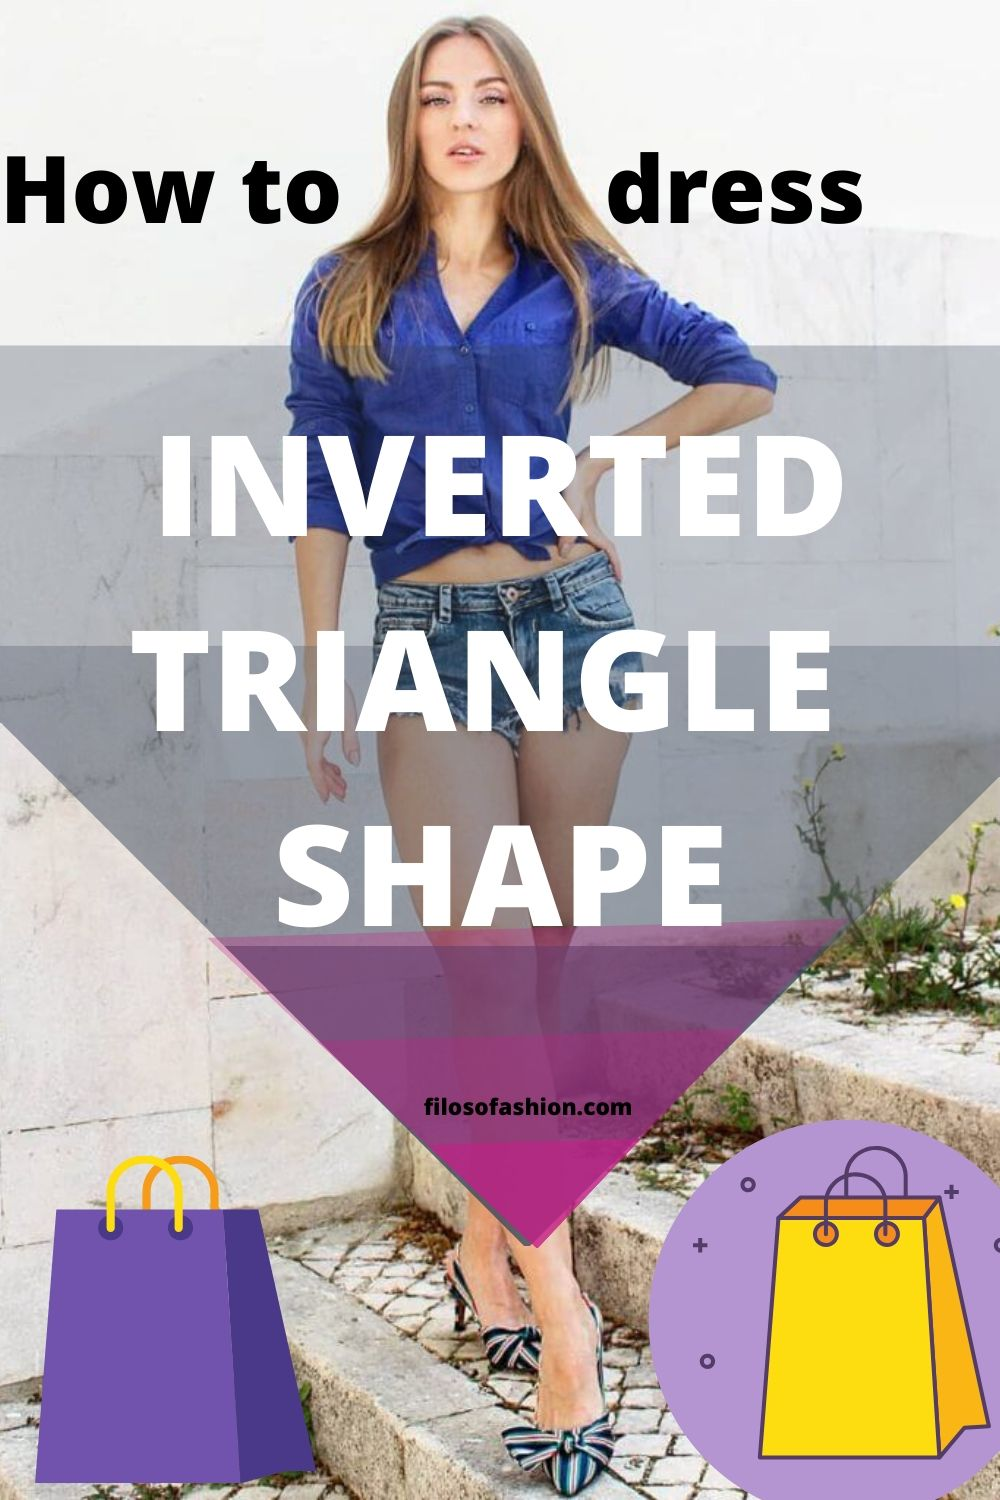 Inverted triangle body shape how to dress